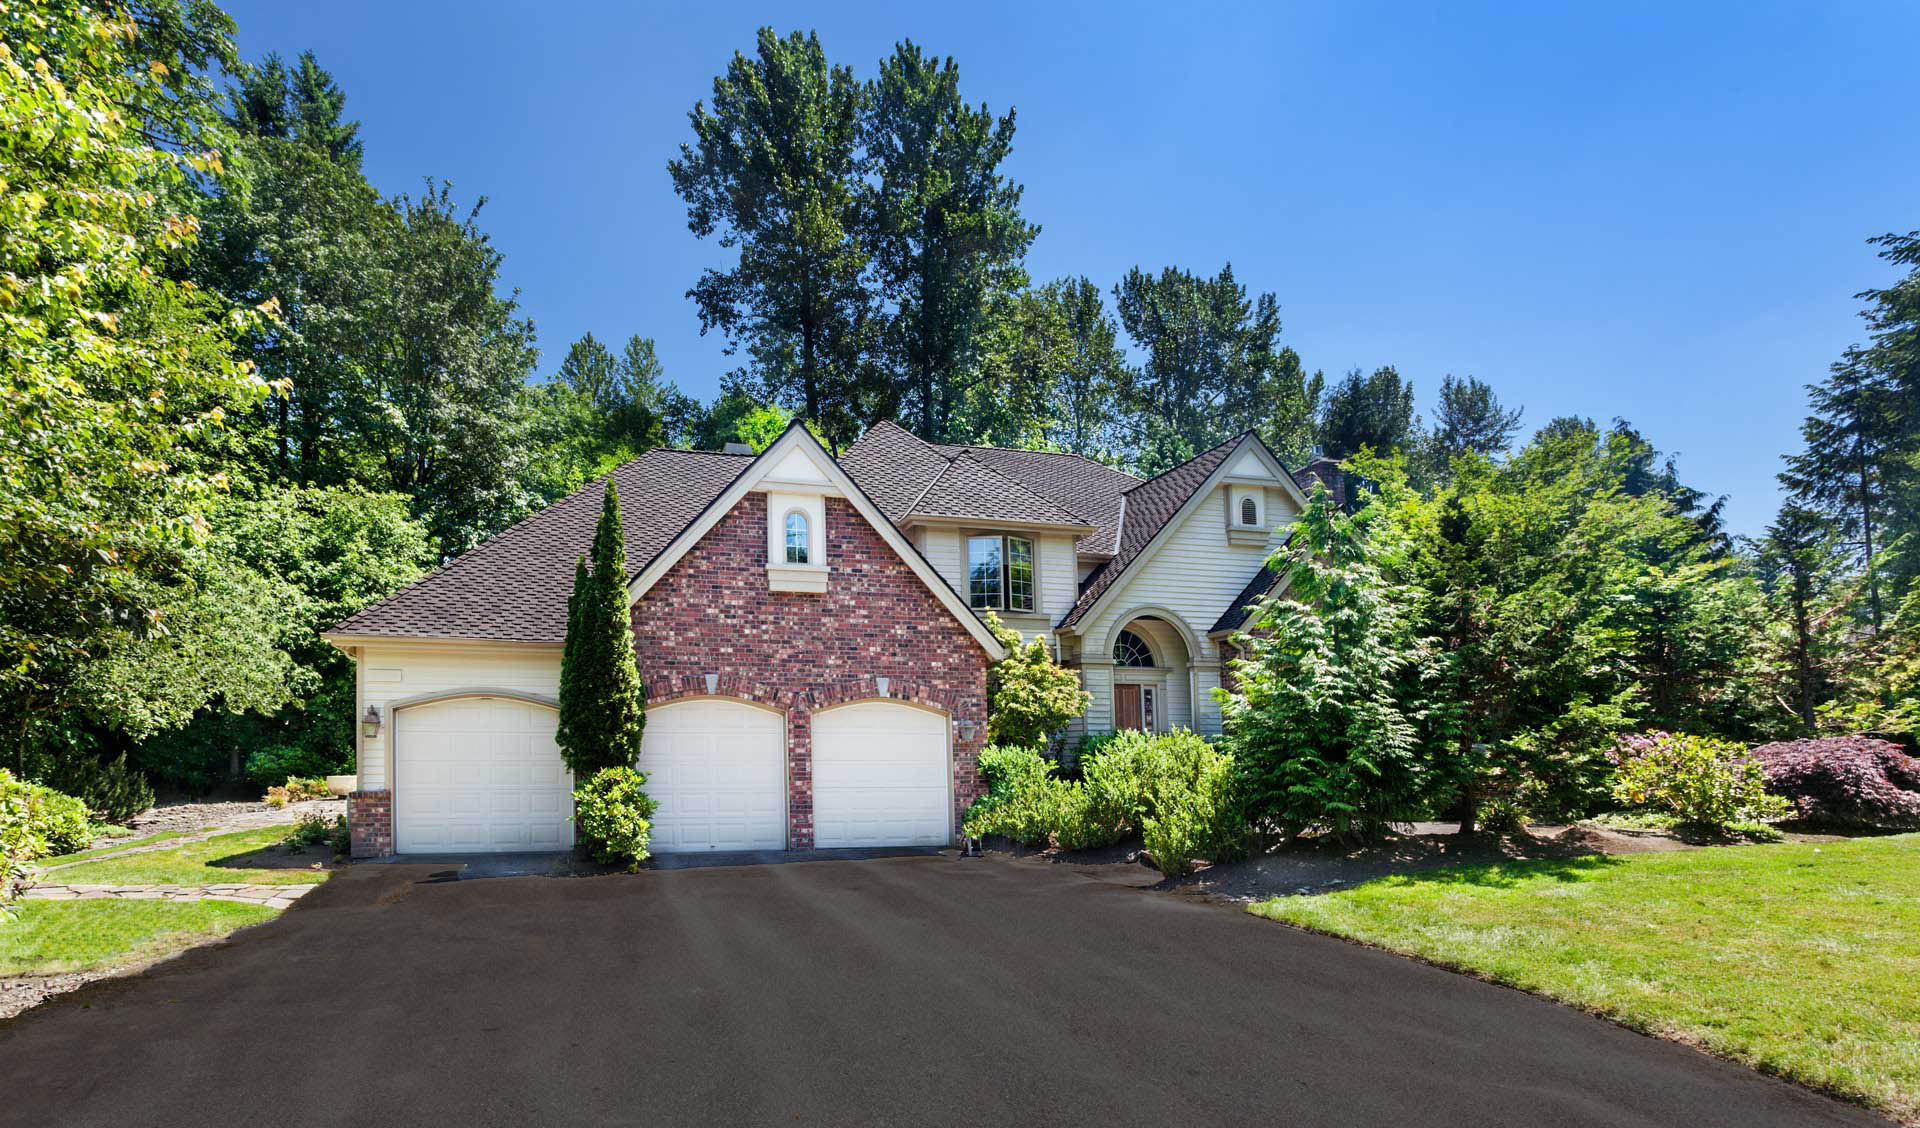 Pacific Northwest Home Inspections exterior Washington brick home